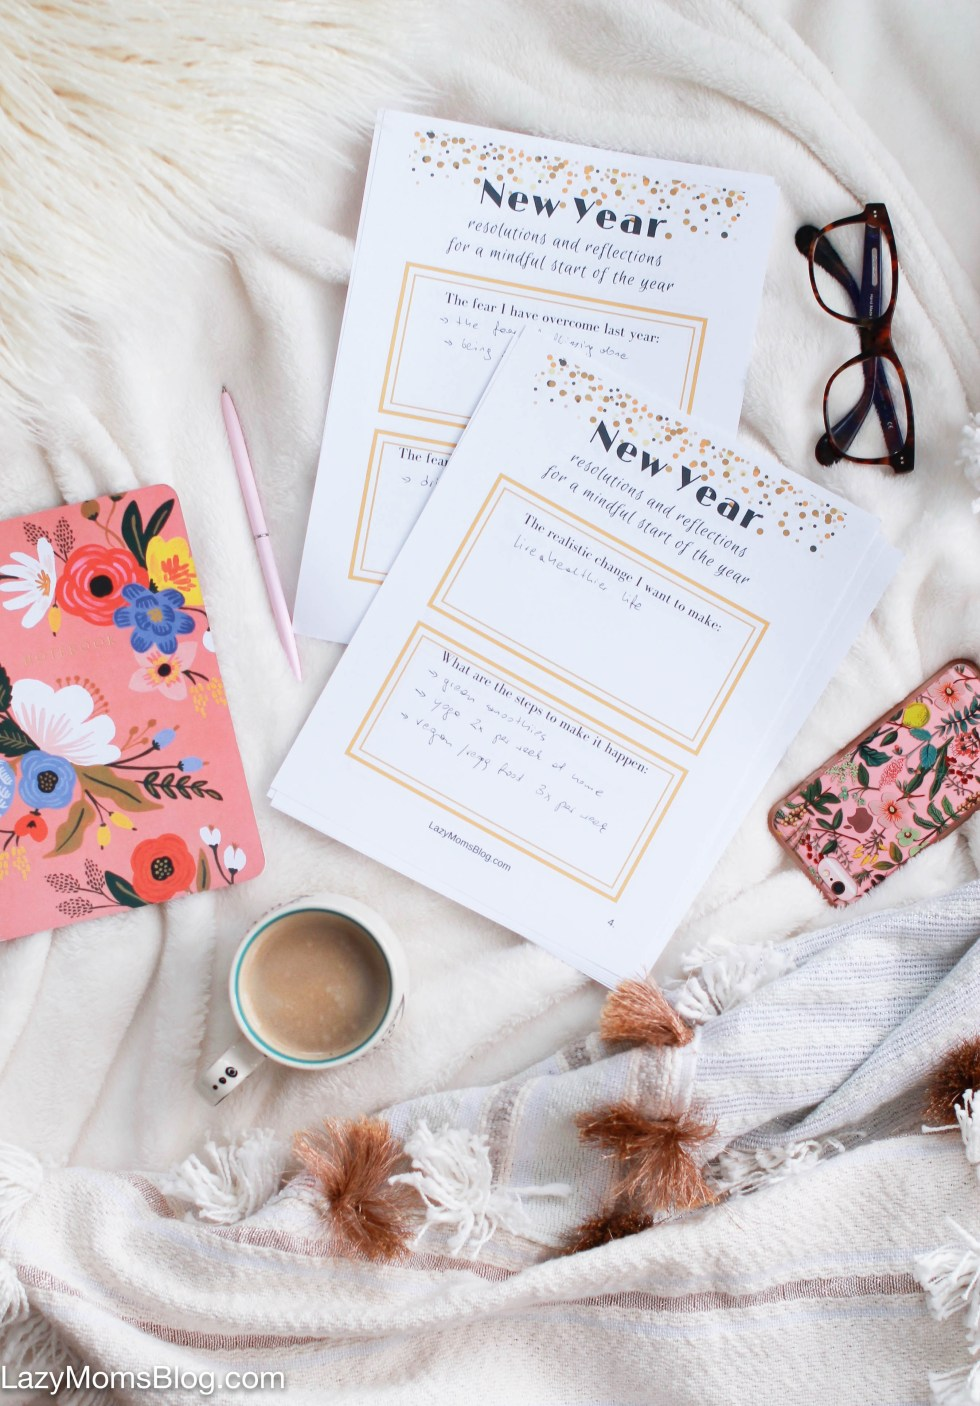 8 pages of free printable resolutions and reflections for a mindful start of the year